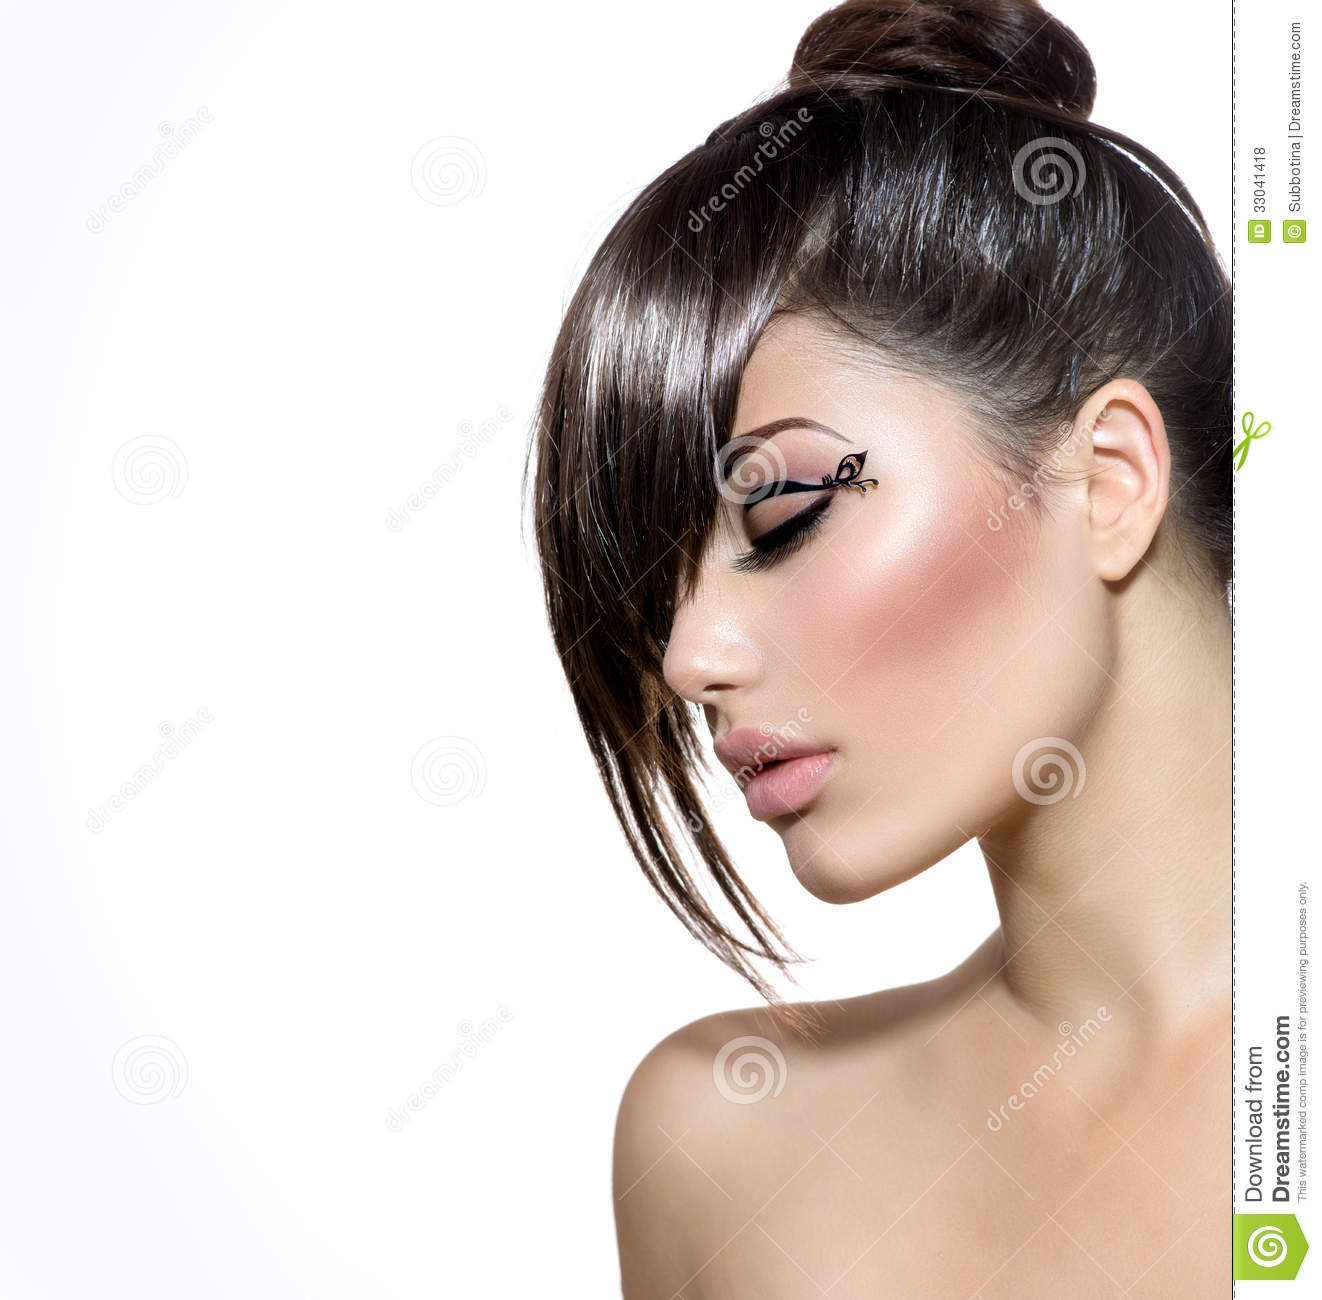 Girl With Stylish Hairstyle Royalty Free Stock Photos Image 33041418